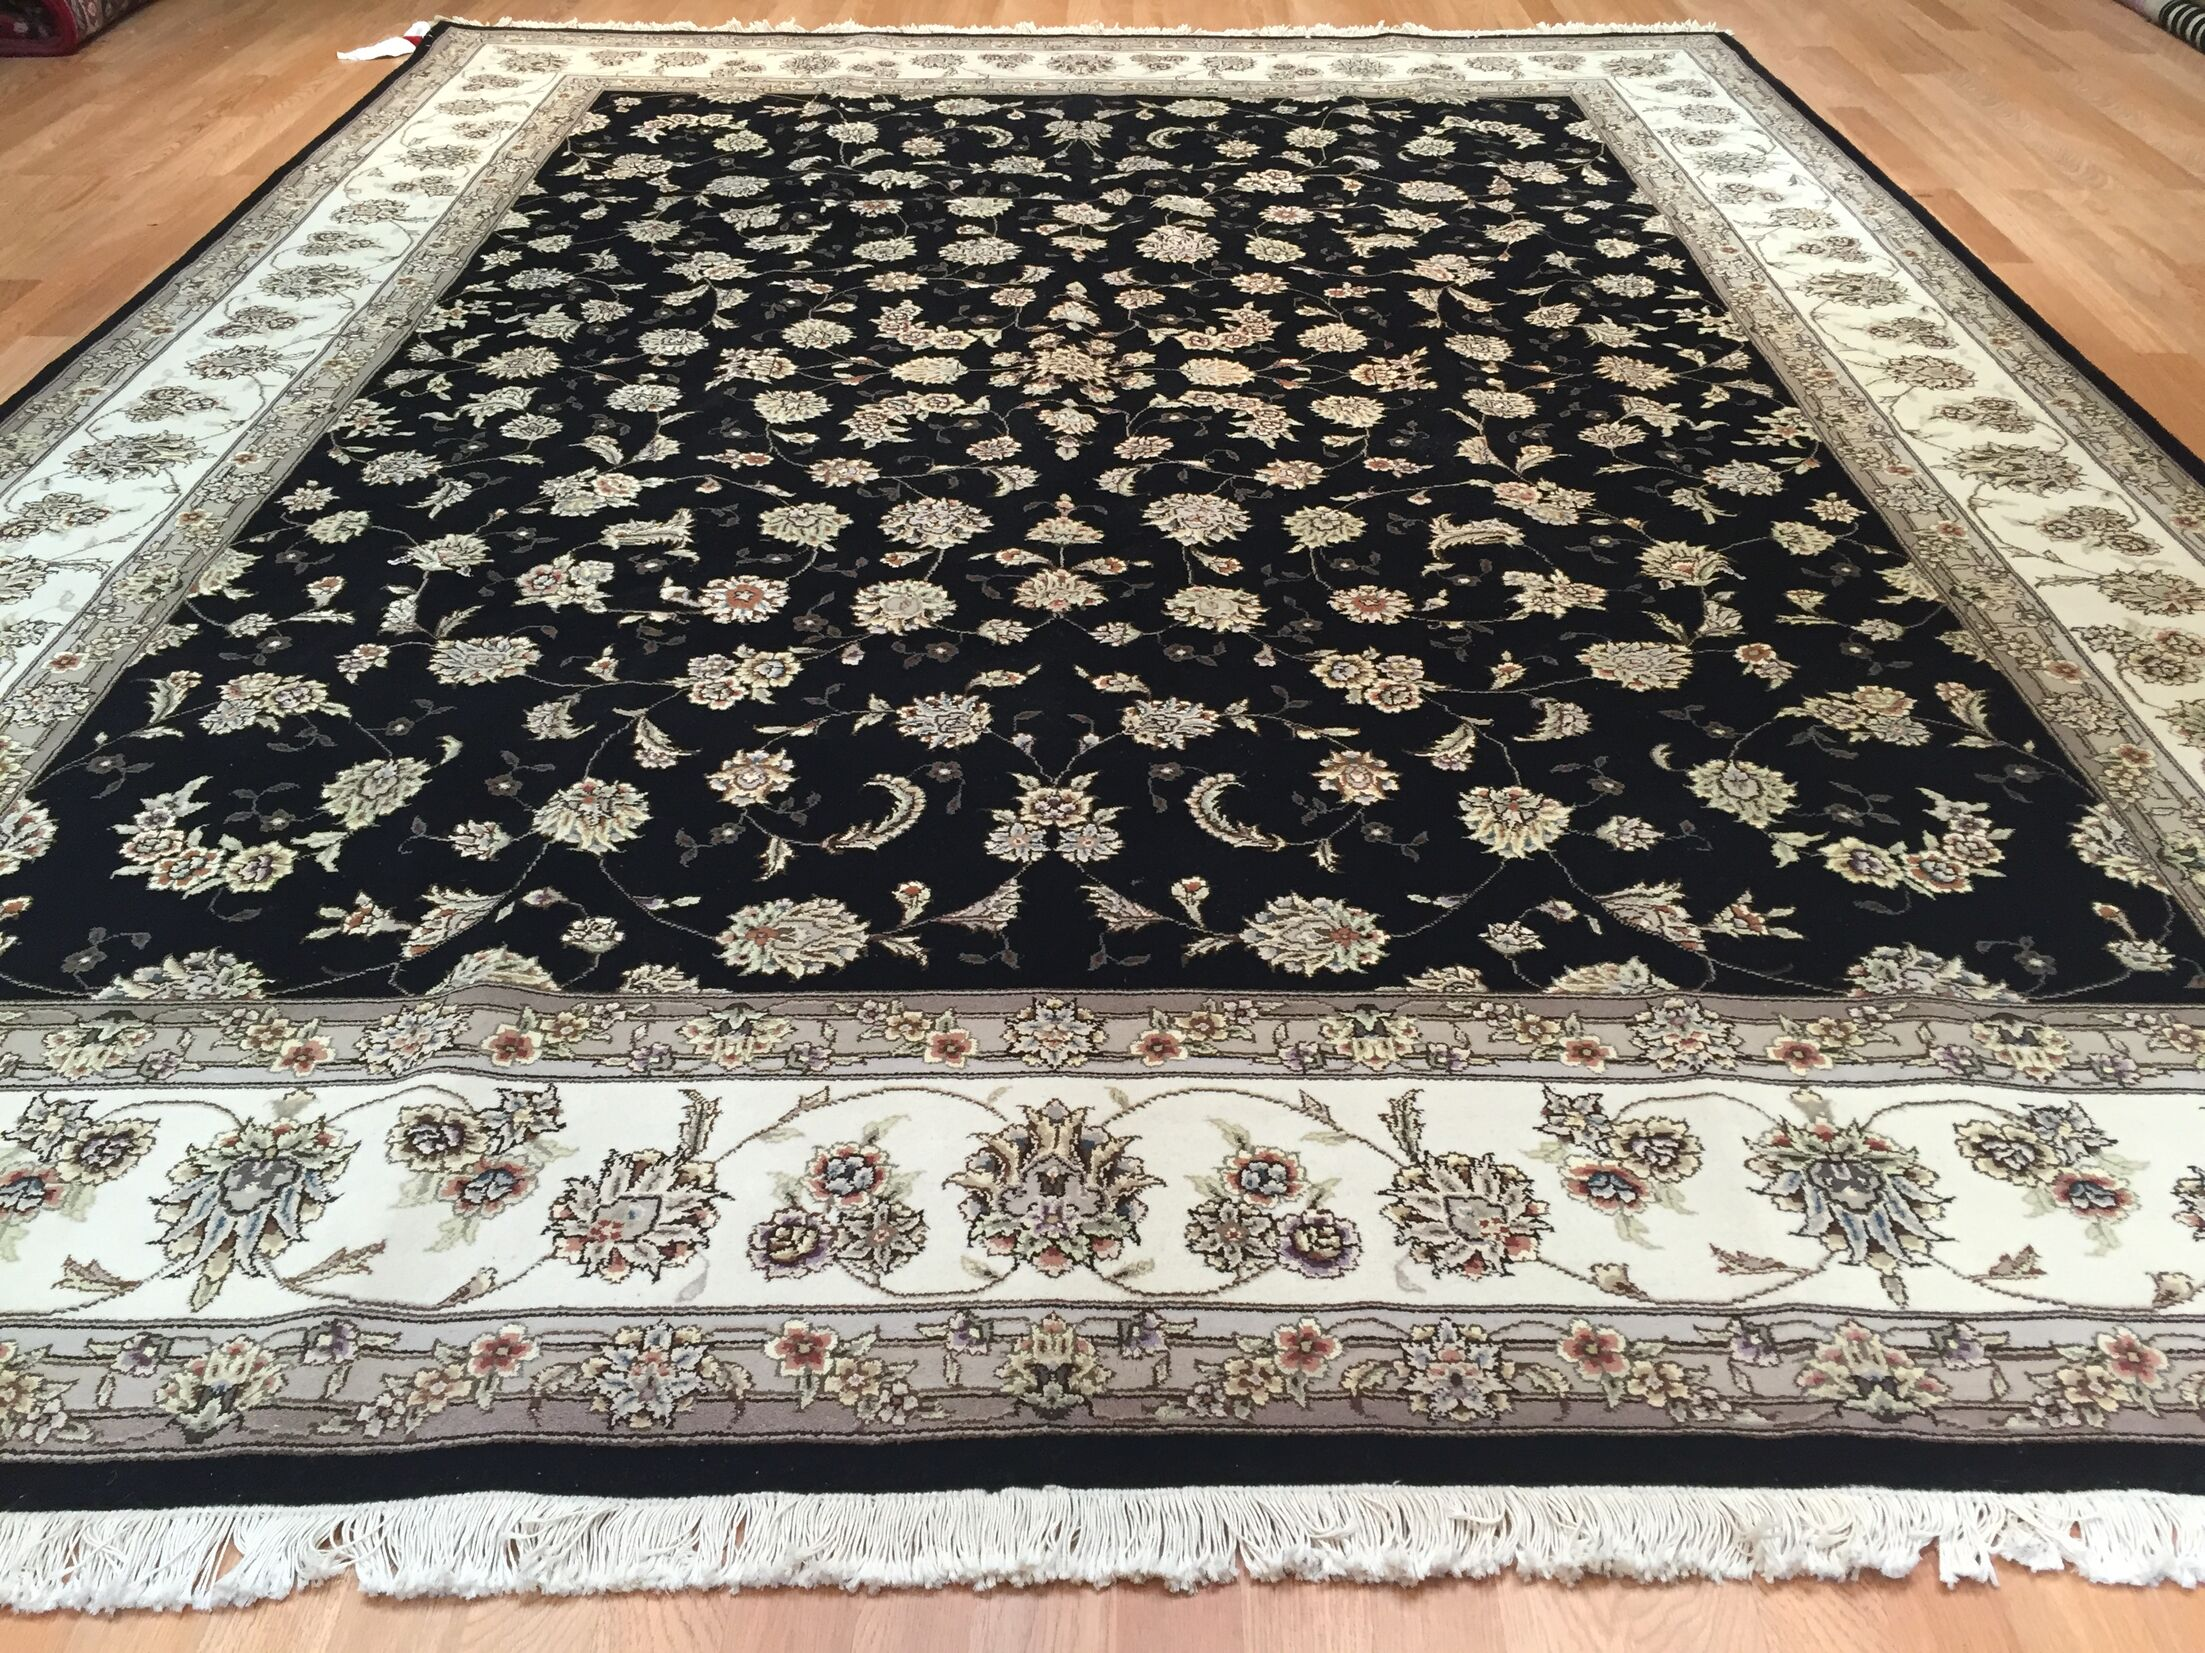 Drummaul Hand-Knotted Black/Beige Area Rug